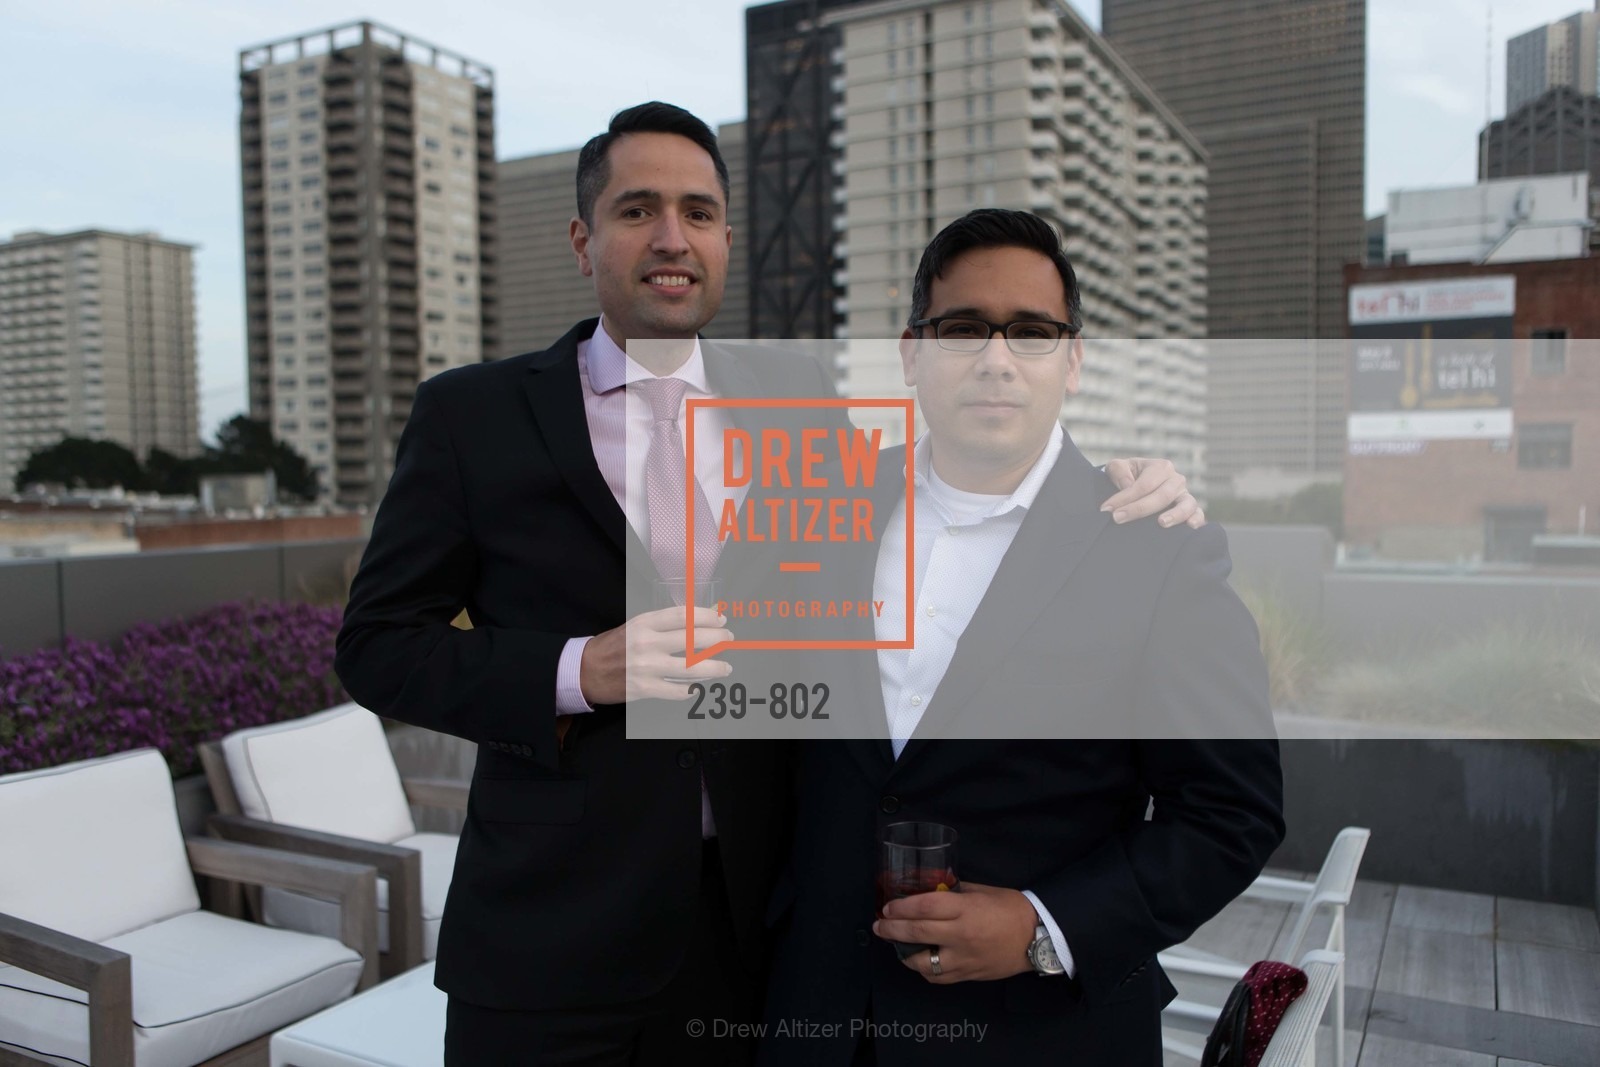 Aaron Barrera, Gonzalo Martinez, MR PORTER Celebrate The San Francisco Issue of The Journal, US, April 24th, 2015,Drew Altizer, Drew Altizer Photography, full-service event agency, private events, San Francisco photographer, photographer California